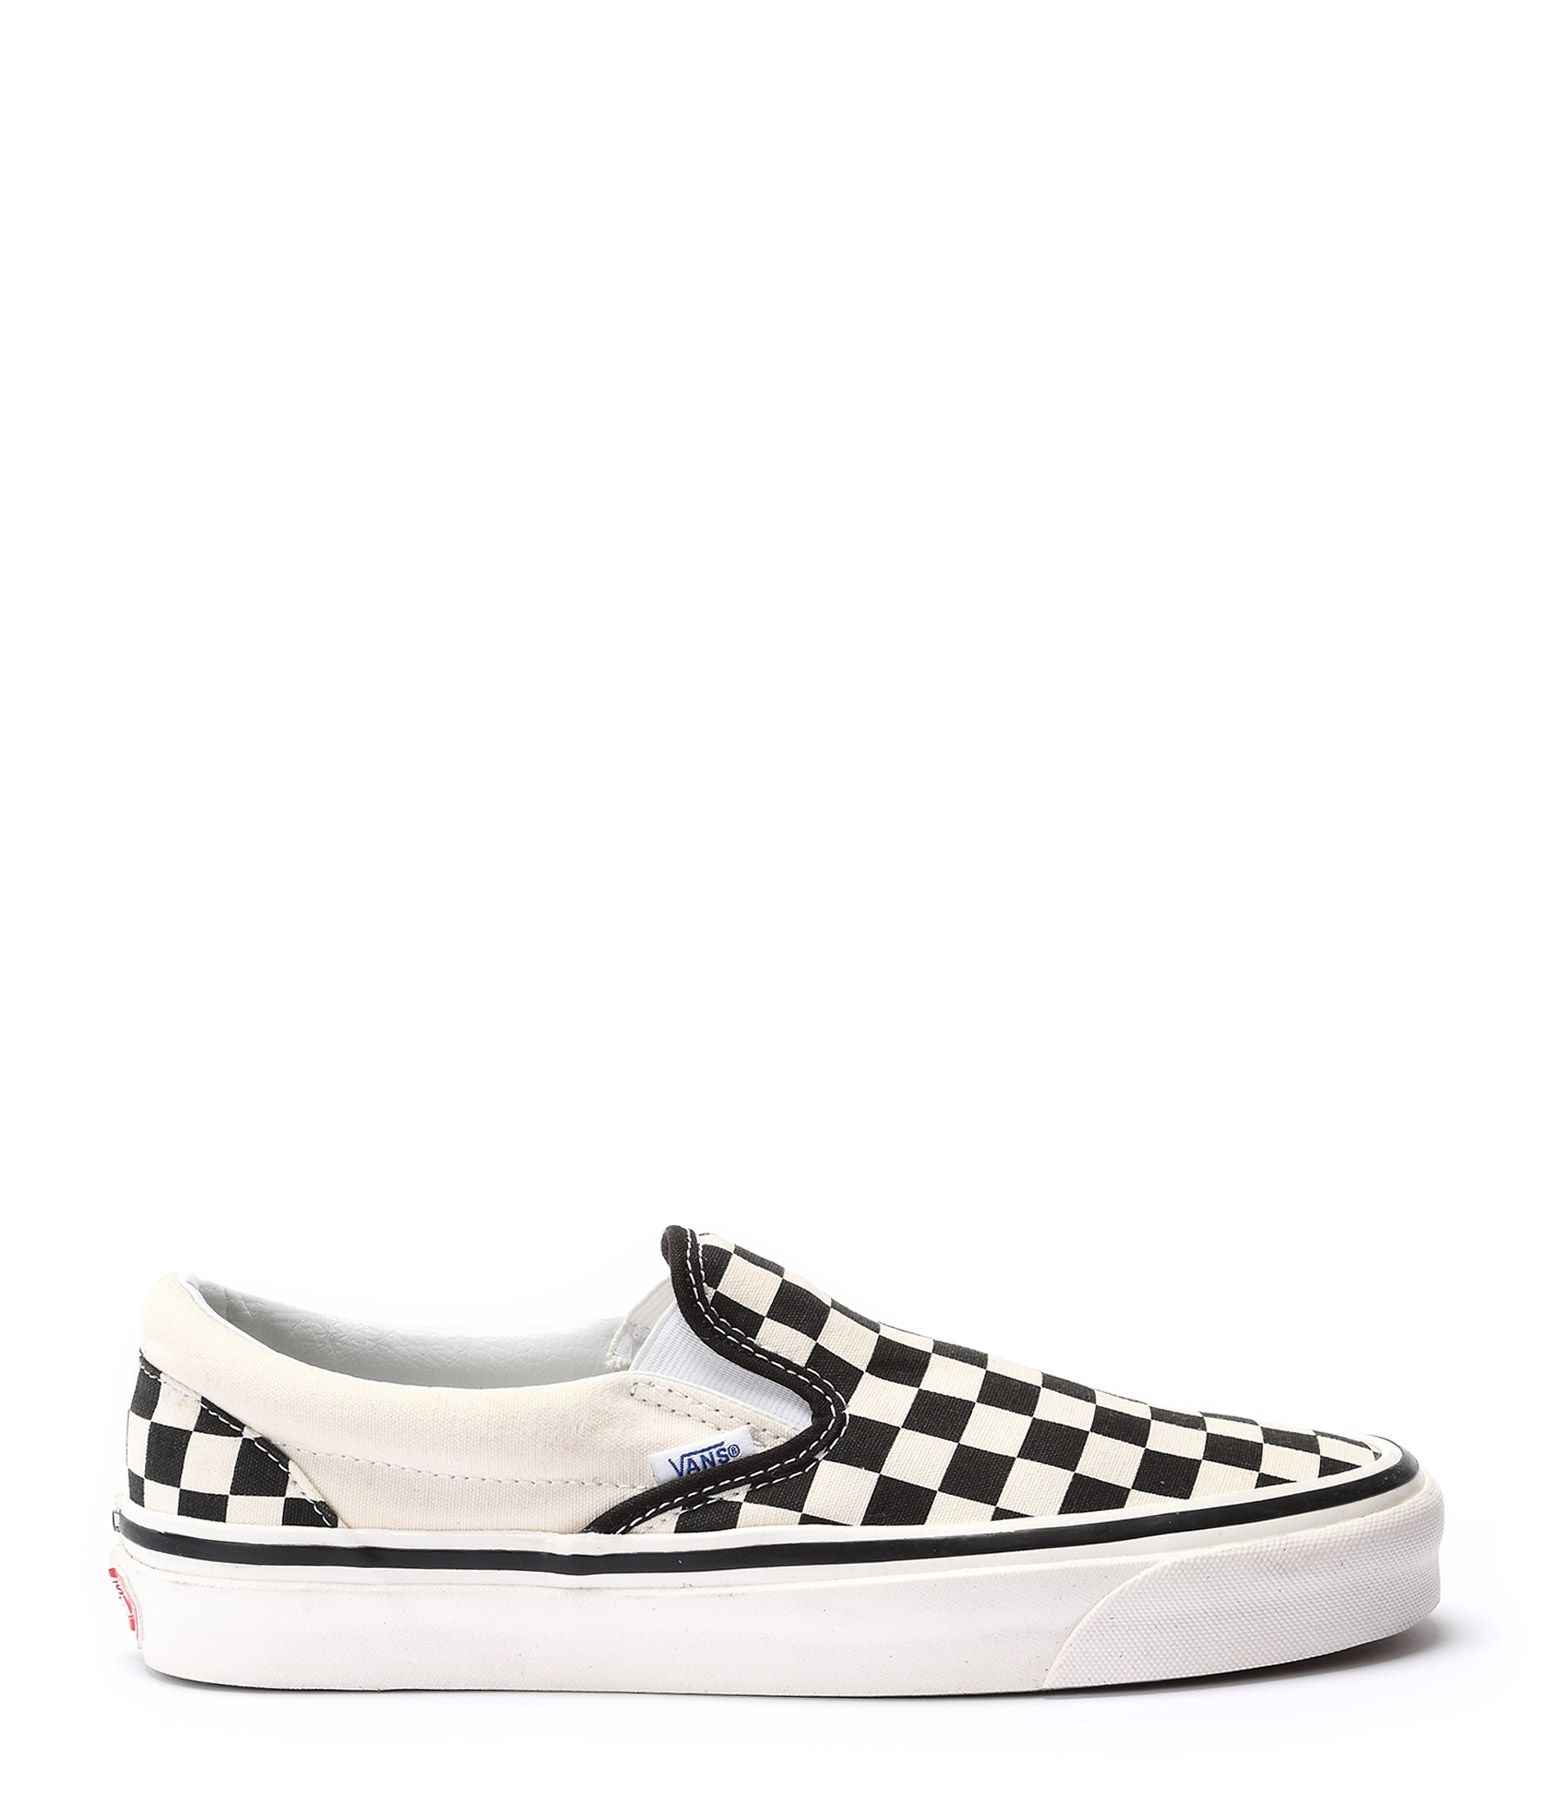 VANS - Baskets Slip-on 98 DX Damier Noir Blanc - Noir blanc ...